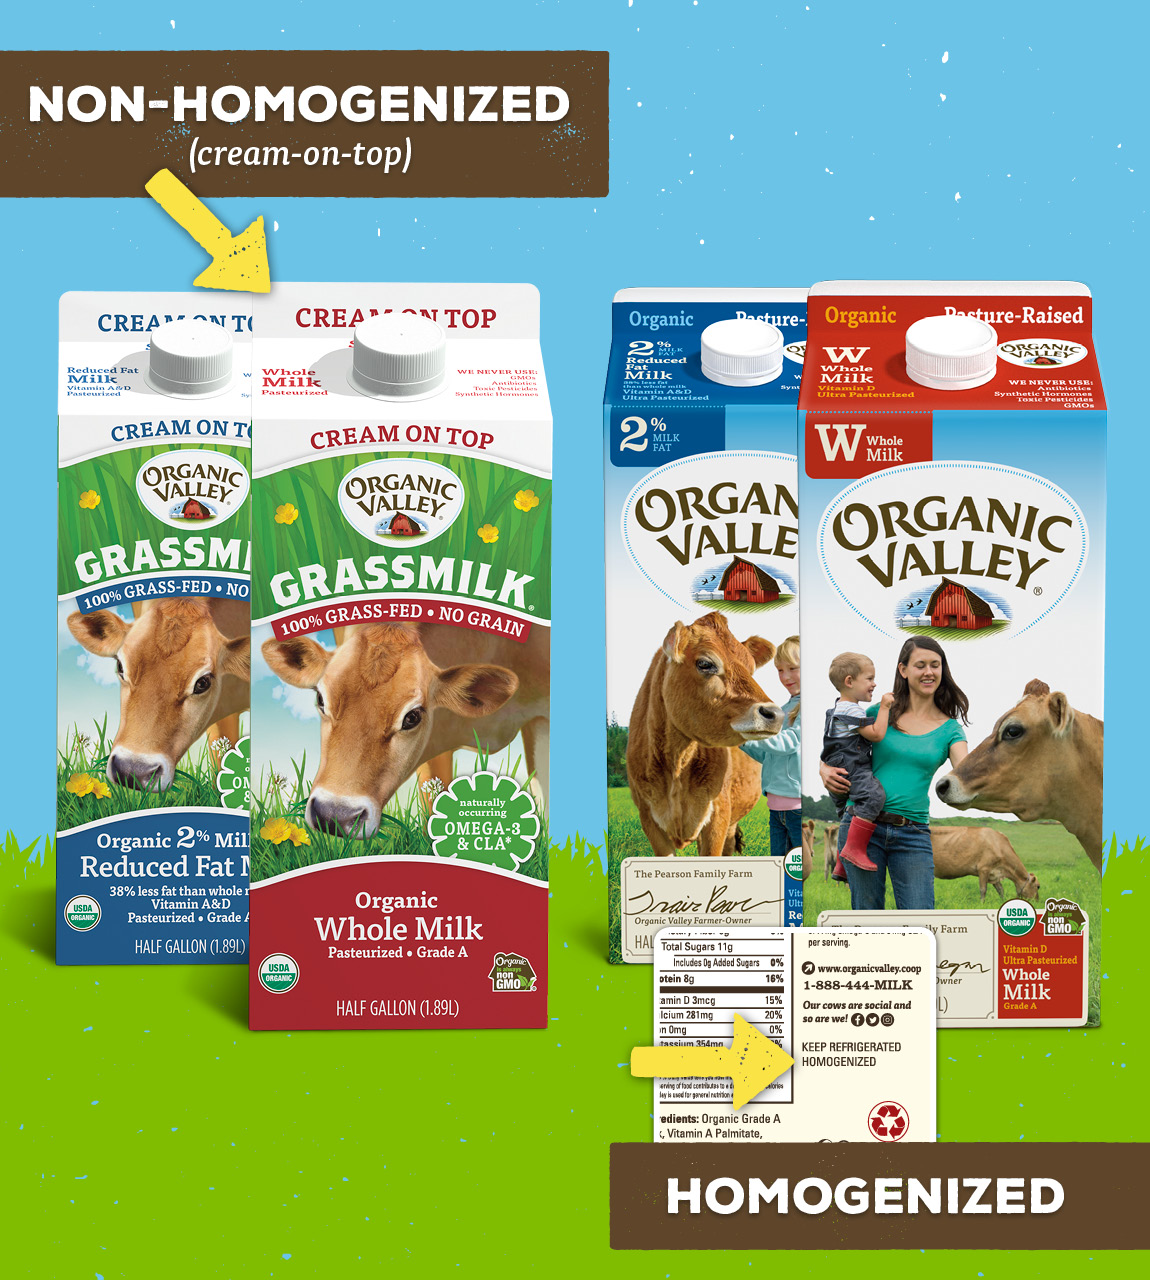 """Organic Valley non-homogenized milk says """"cream-on-top"""" on the front and top of the carton, and our homogenized milk says """"homogenized"""" on the nutrition side panel."""